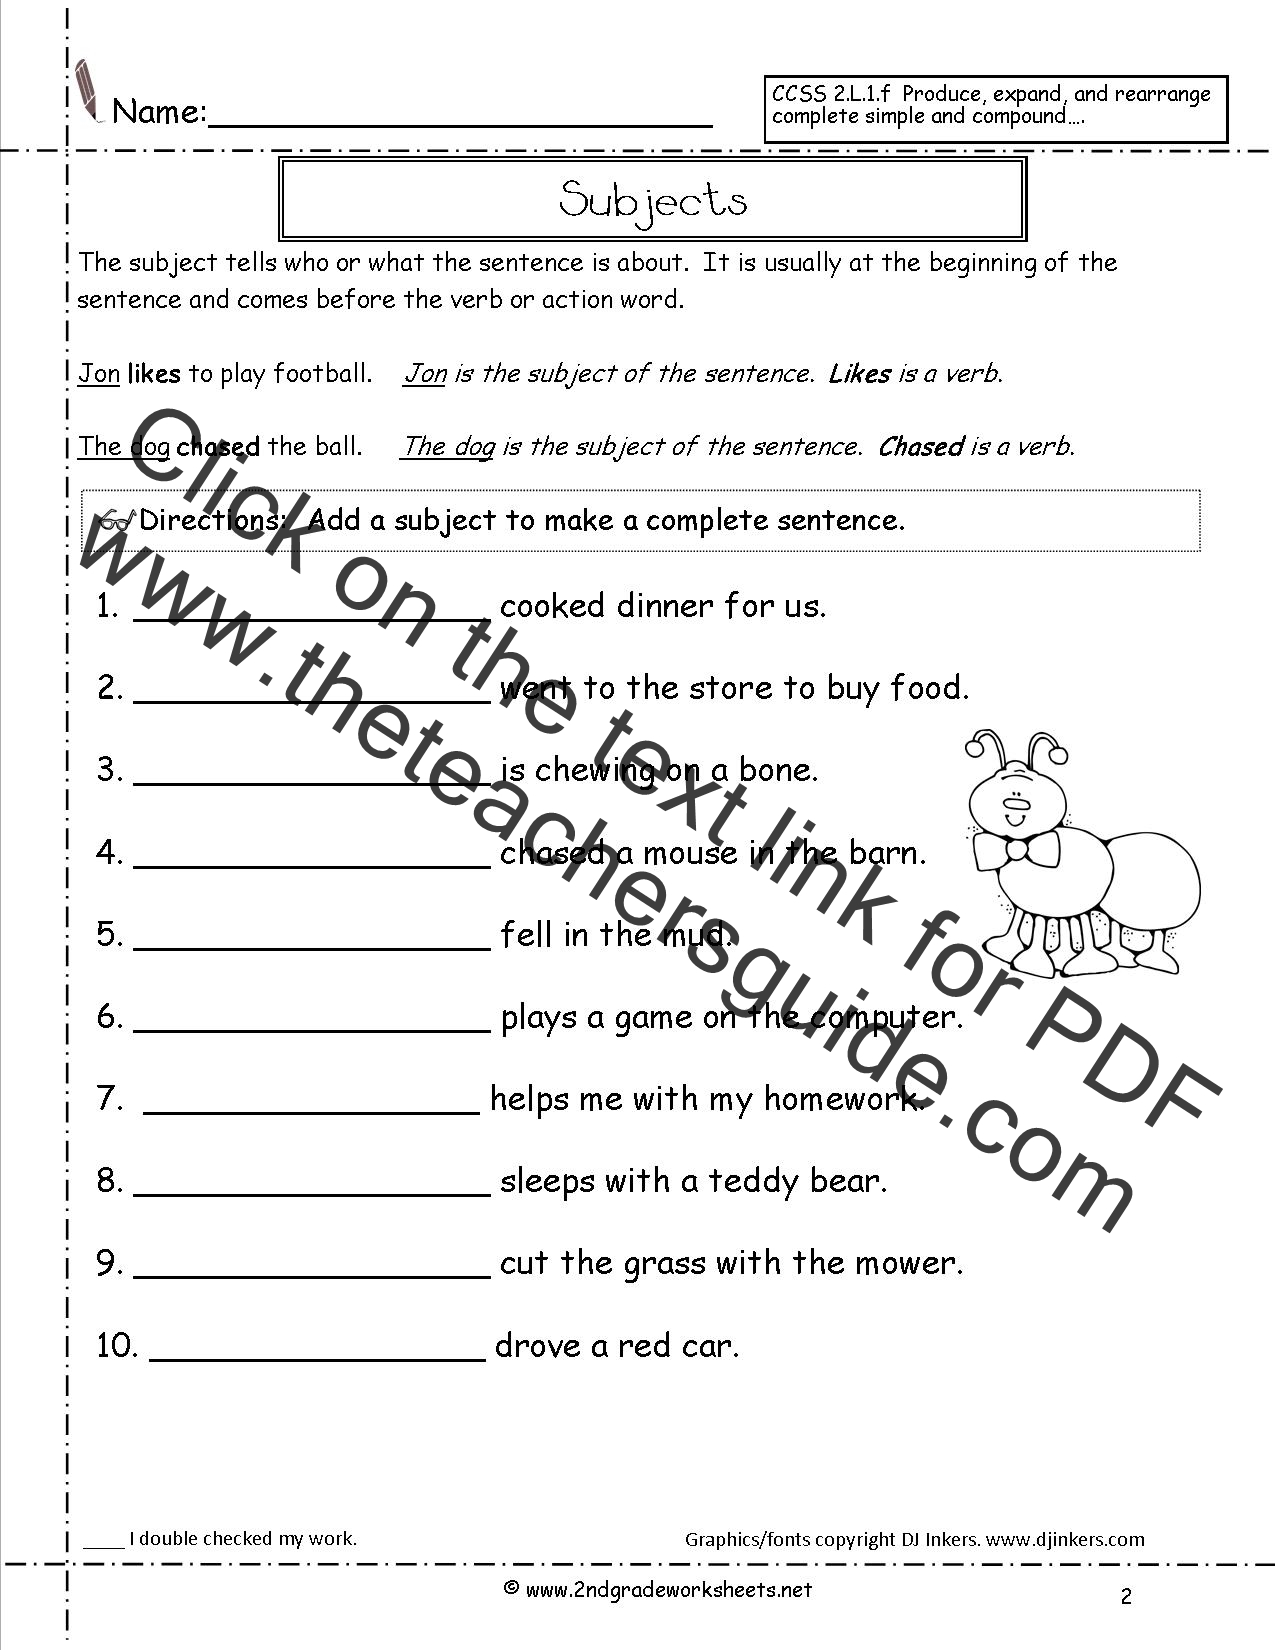 Worksheets Types Of Sentences Worksheets second grade sentences worksheets ccss 2 l 1 f subjects worksheet sentence subjects